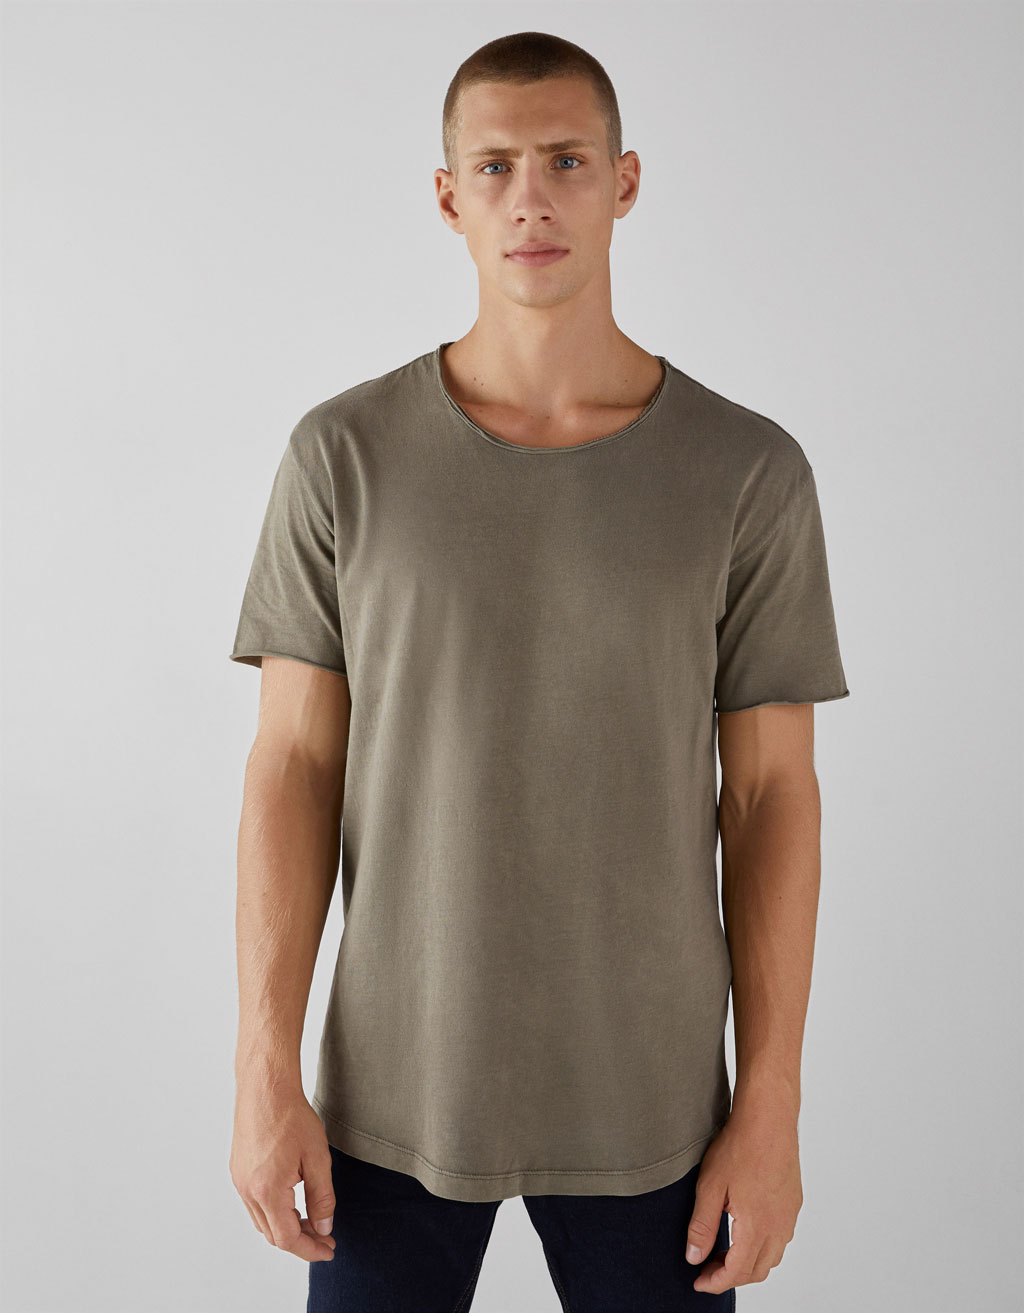 Solid T-shirt with a raw-cut neck